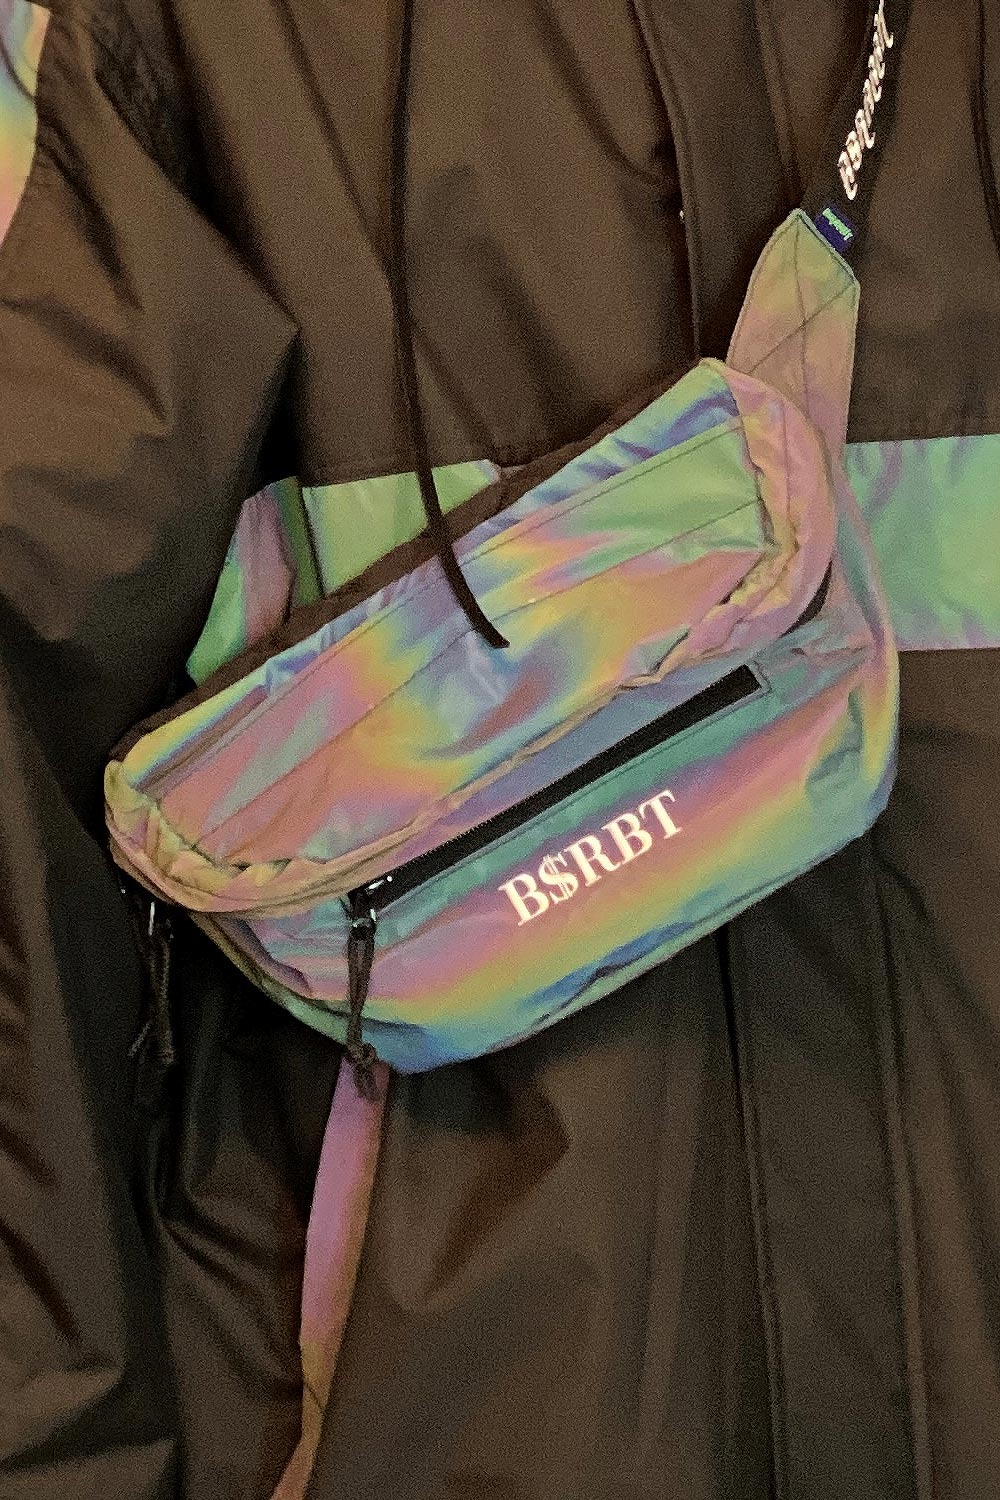 2021 비에스래빗 아이딜 웨이스트 백 2021 BSRABBIT BSRBT IDEAL WAIST BAG_RAINBOW REFLECTIVE_남녀공용_FKBS004R2